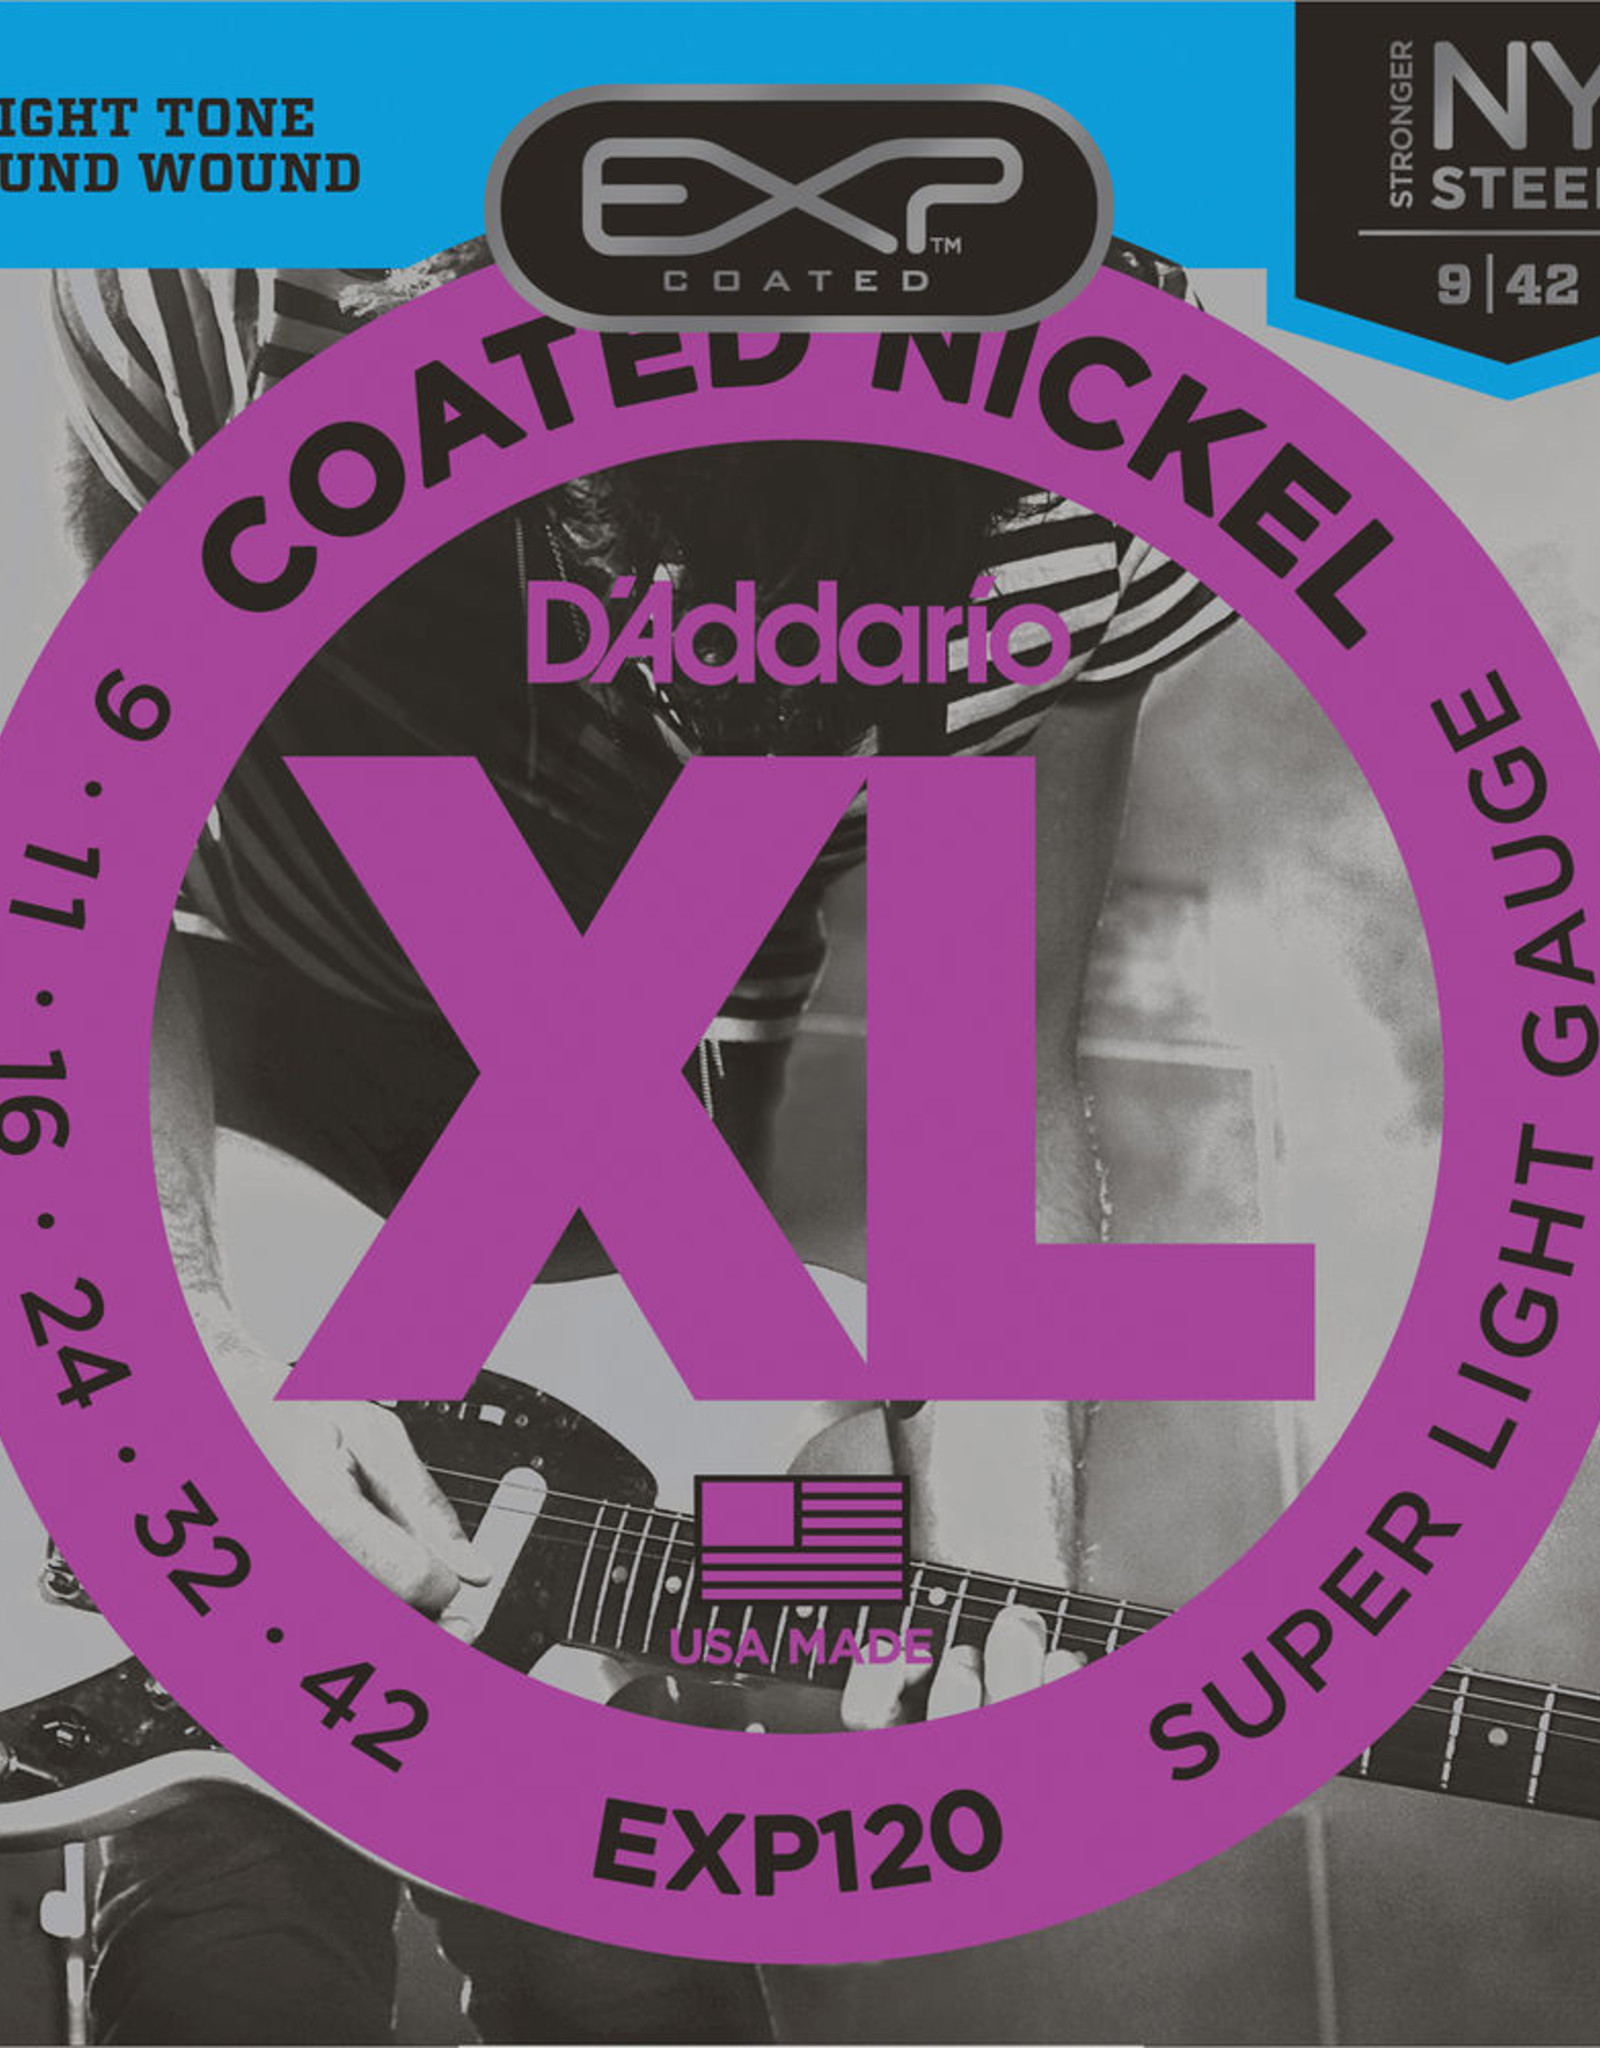 D'Addario D'Addario EXP120, 9-42 Coated Electric Guitar Strings Extra Light